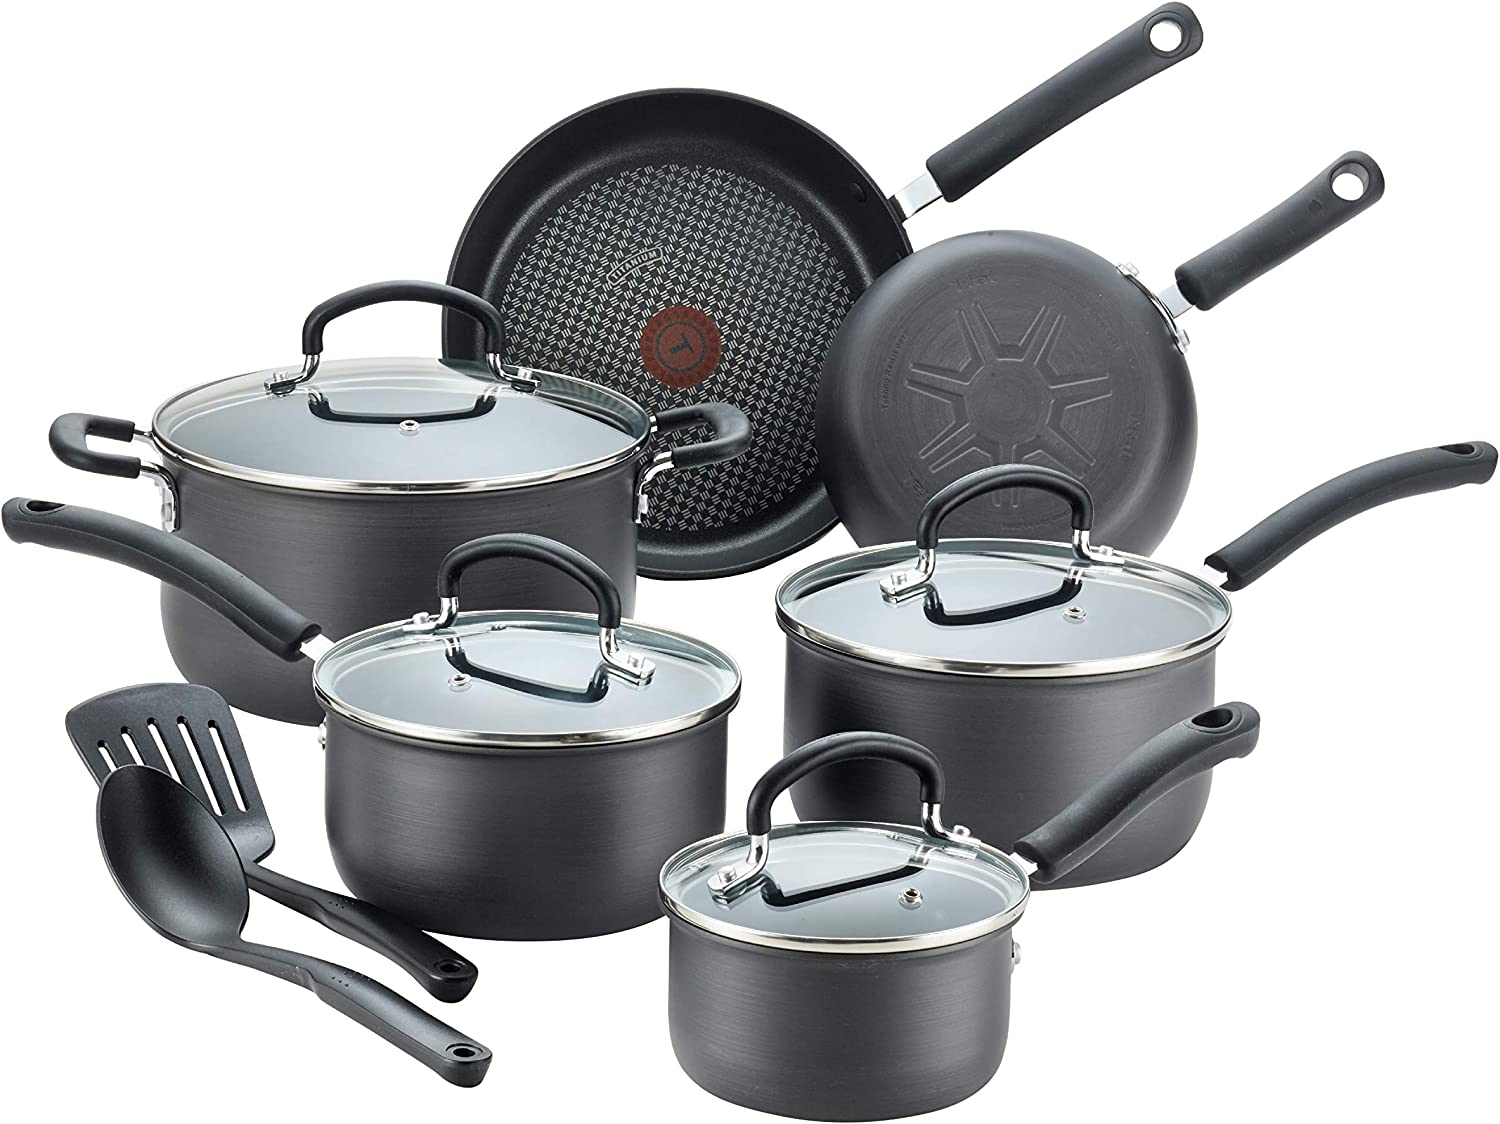 T-fal E765SC Ultimate Hard Anodized Nonstick 12 Piece Cookware Set, Dishwasher Safe Pots and Pans Set, Black